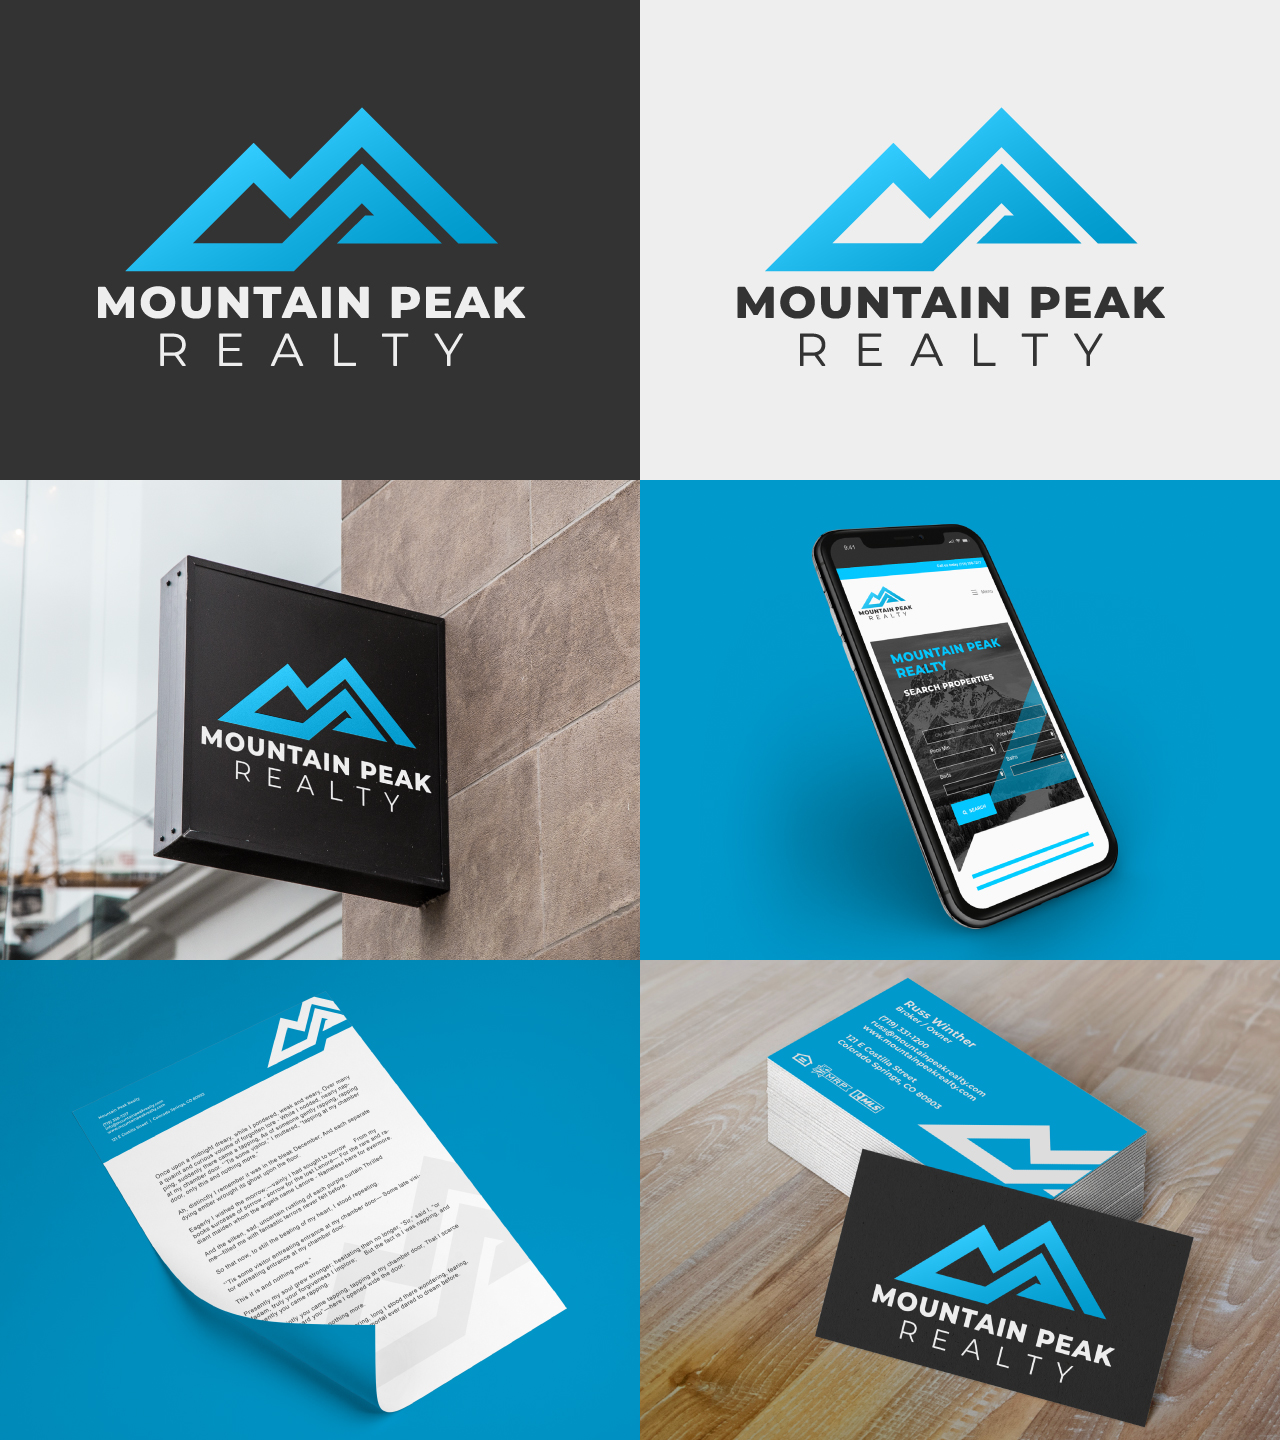 hi-five design, hi-five colorado springs, brand design colorado springs, logo designer colorado springs, logo designer denver, graphic designer colorado springs